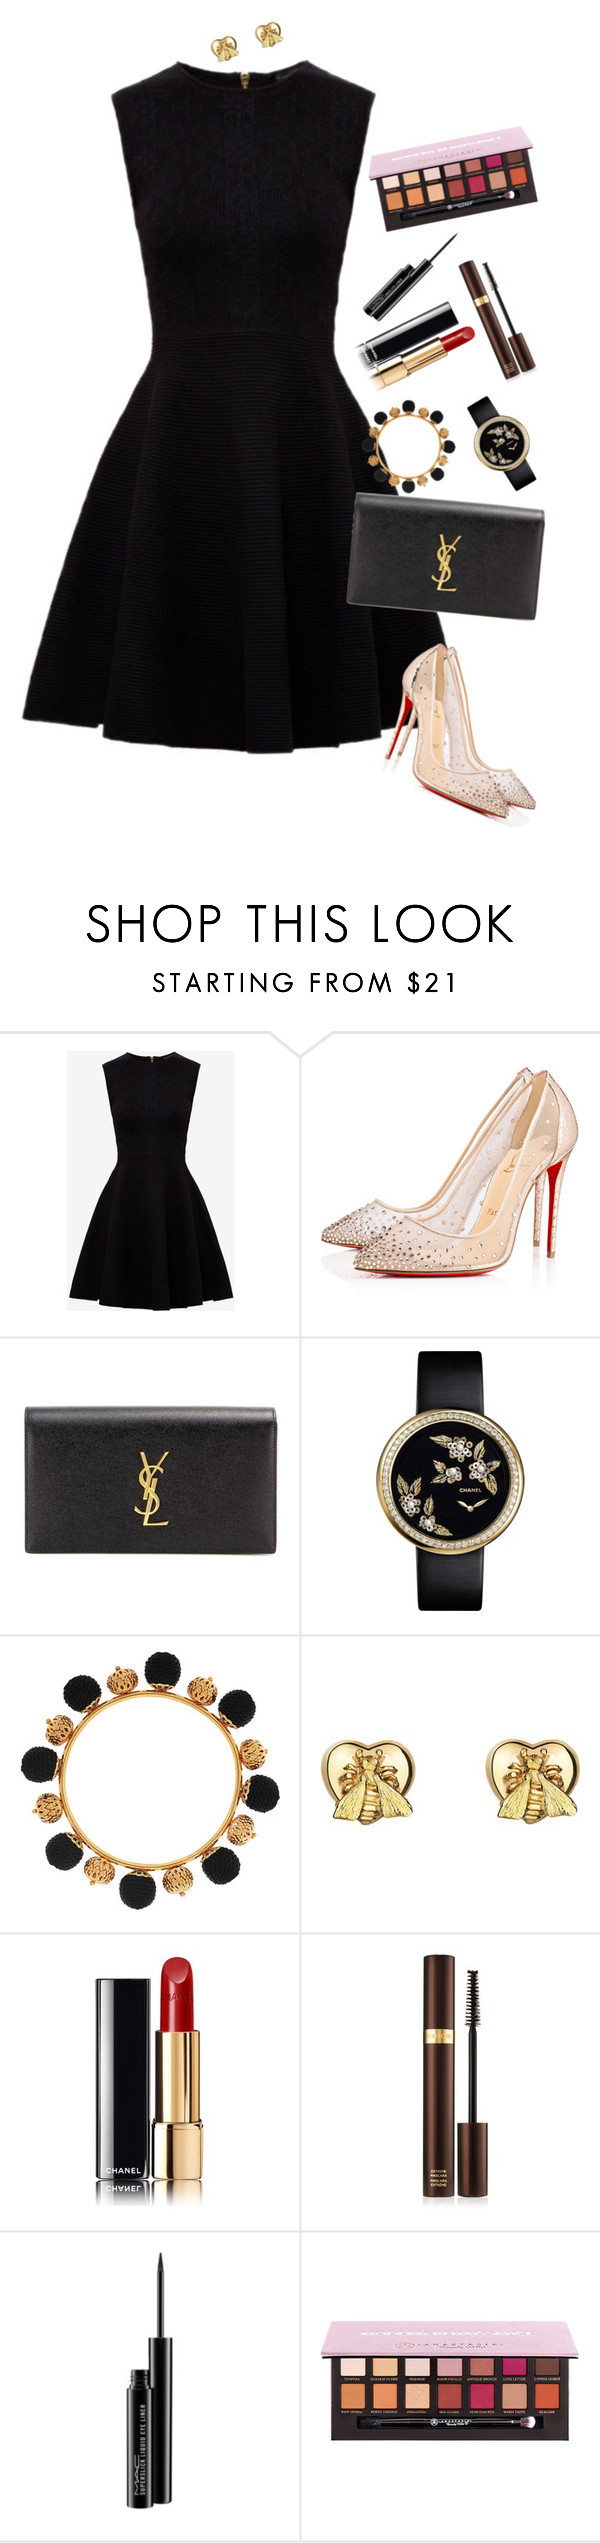 """""""Now, who is my secret santa ?"""" by xoxomuty on Polyvore featuring Ted Baker, Christian Louboutin, Yves Saint Laurent, Dolce&Gabbana, Gucci, Tom Ford, MAC Cosmetics, Christmas and polyvoreOOTD"""